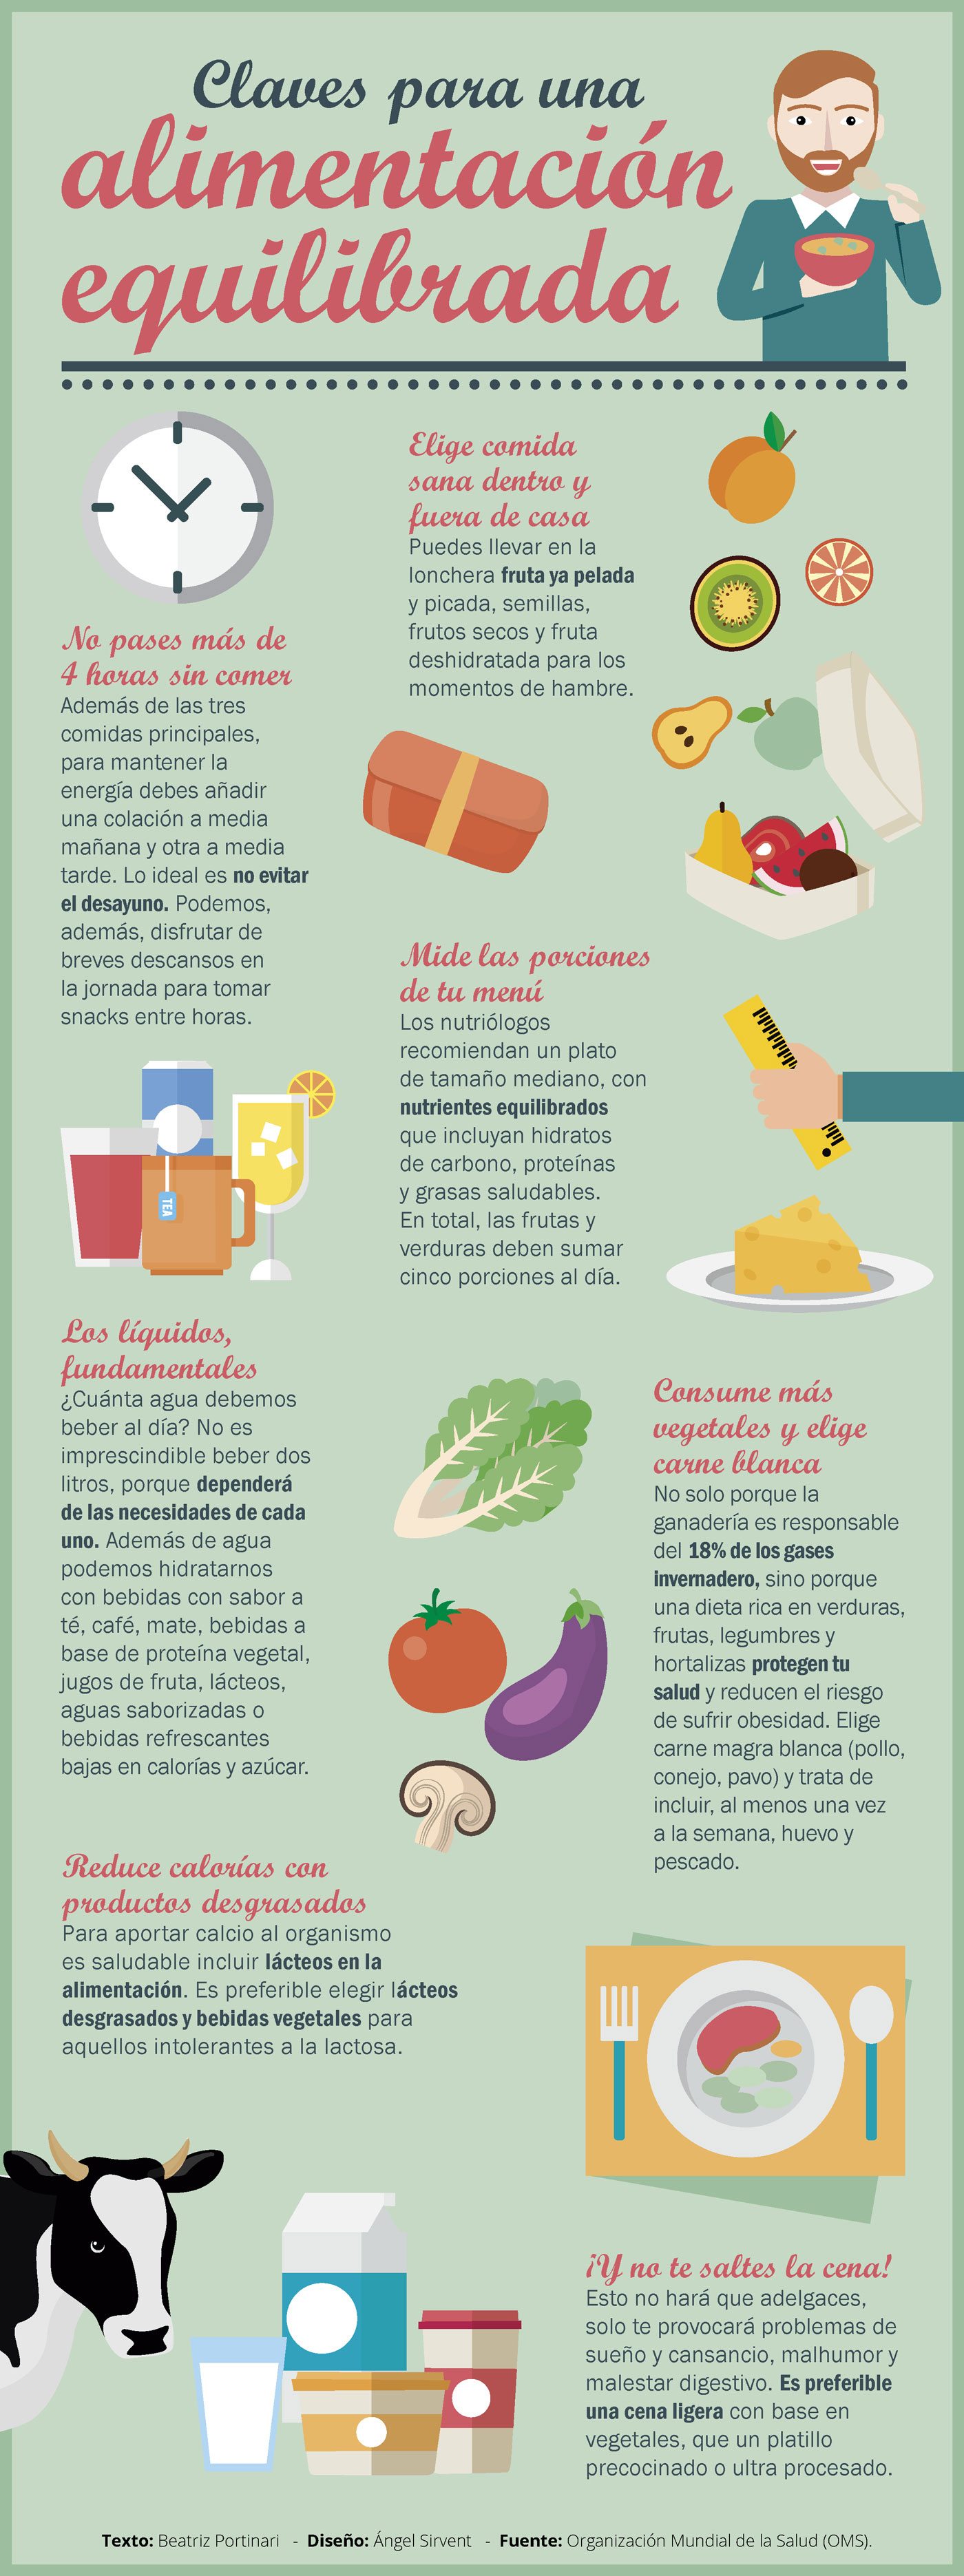 beneficios de la alimentacion saludable